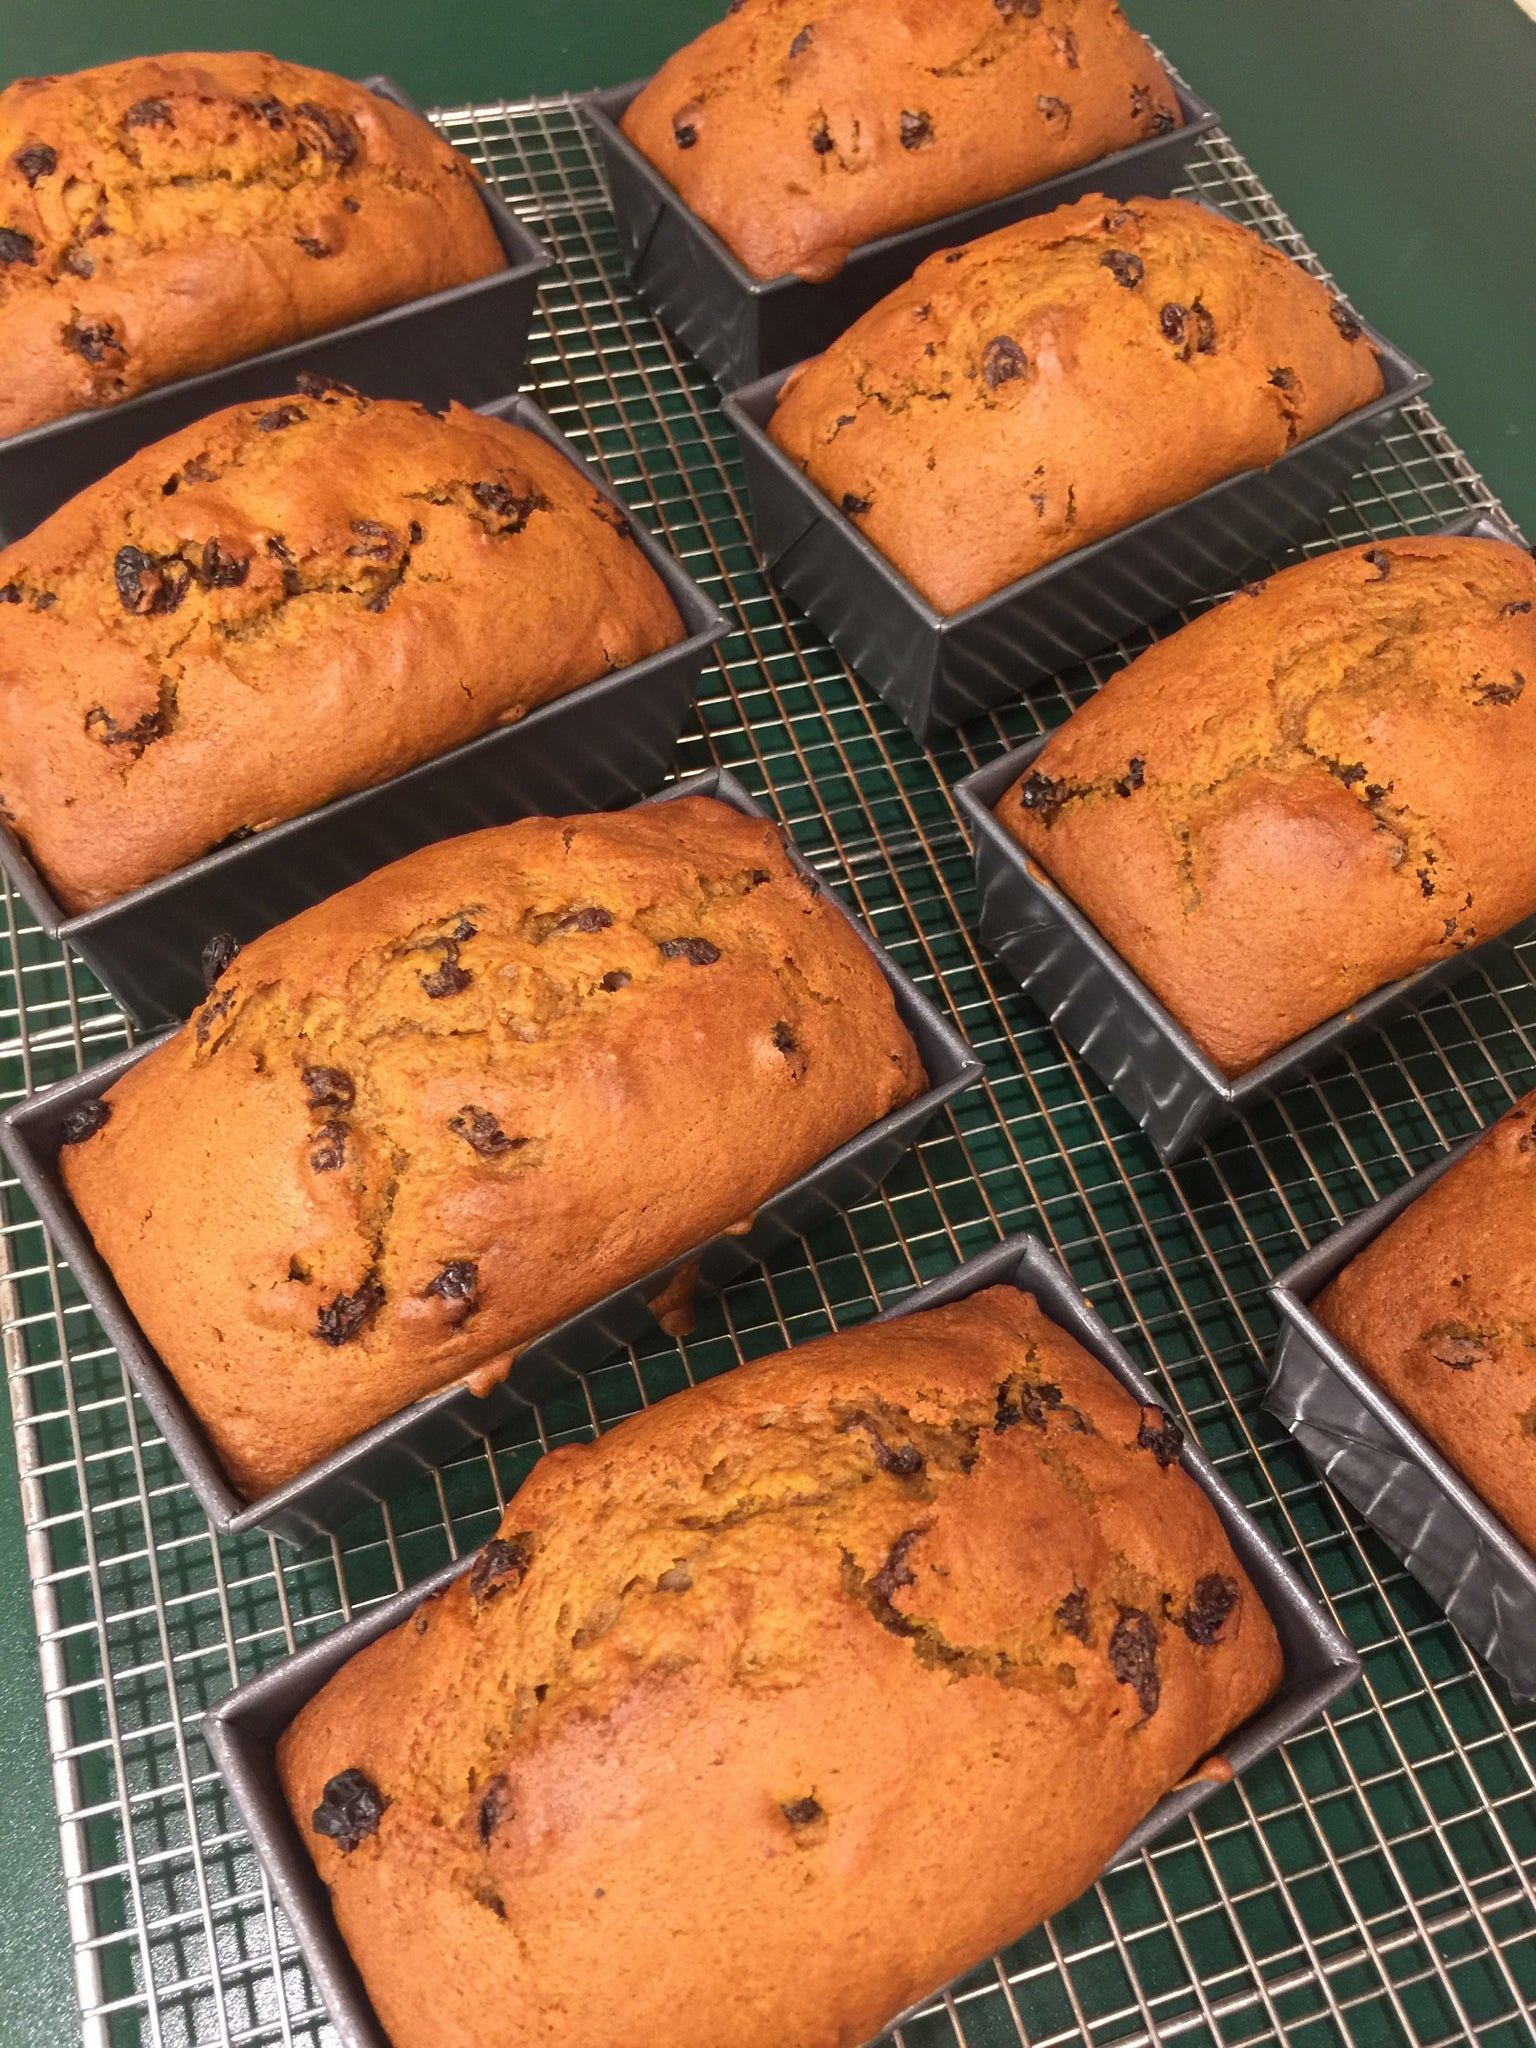 1/26 Buggy Bake - Mini Loaf Pumpkin Chocolate Chip Bread